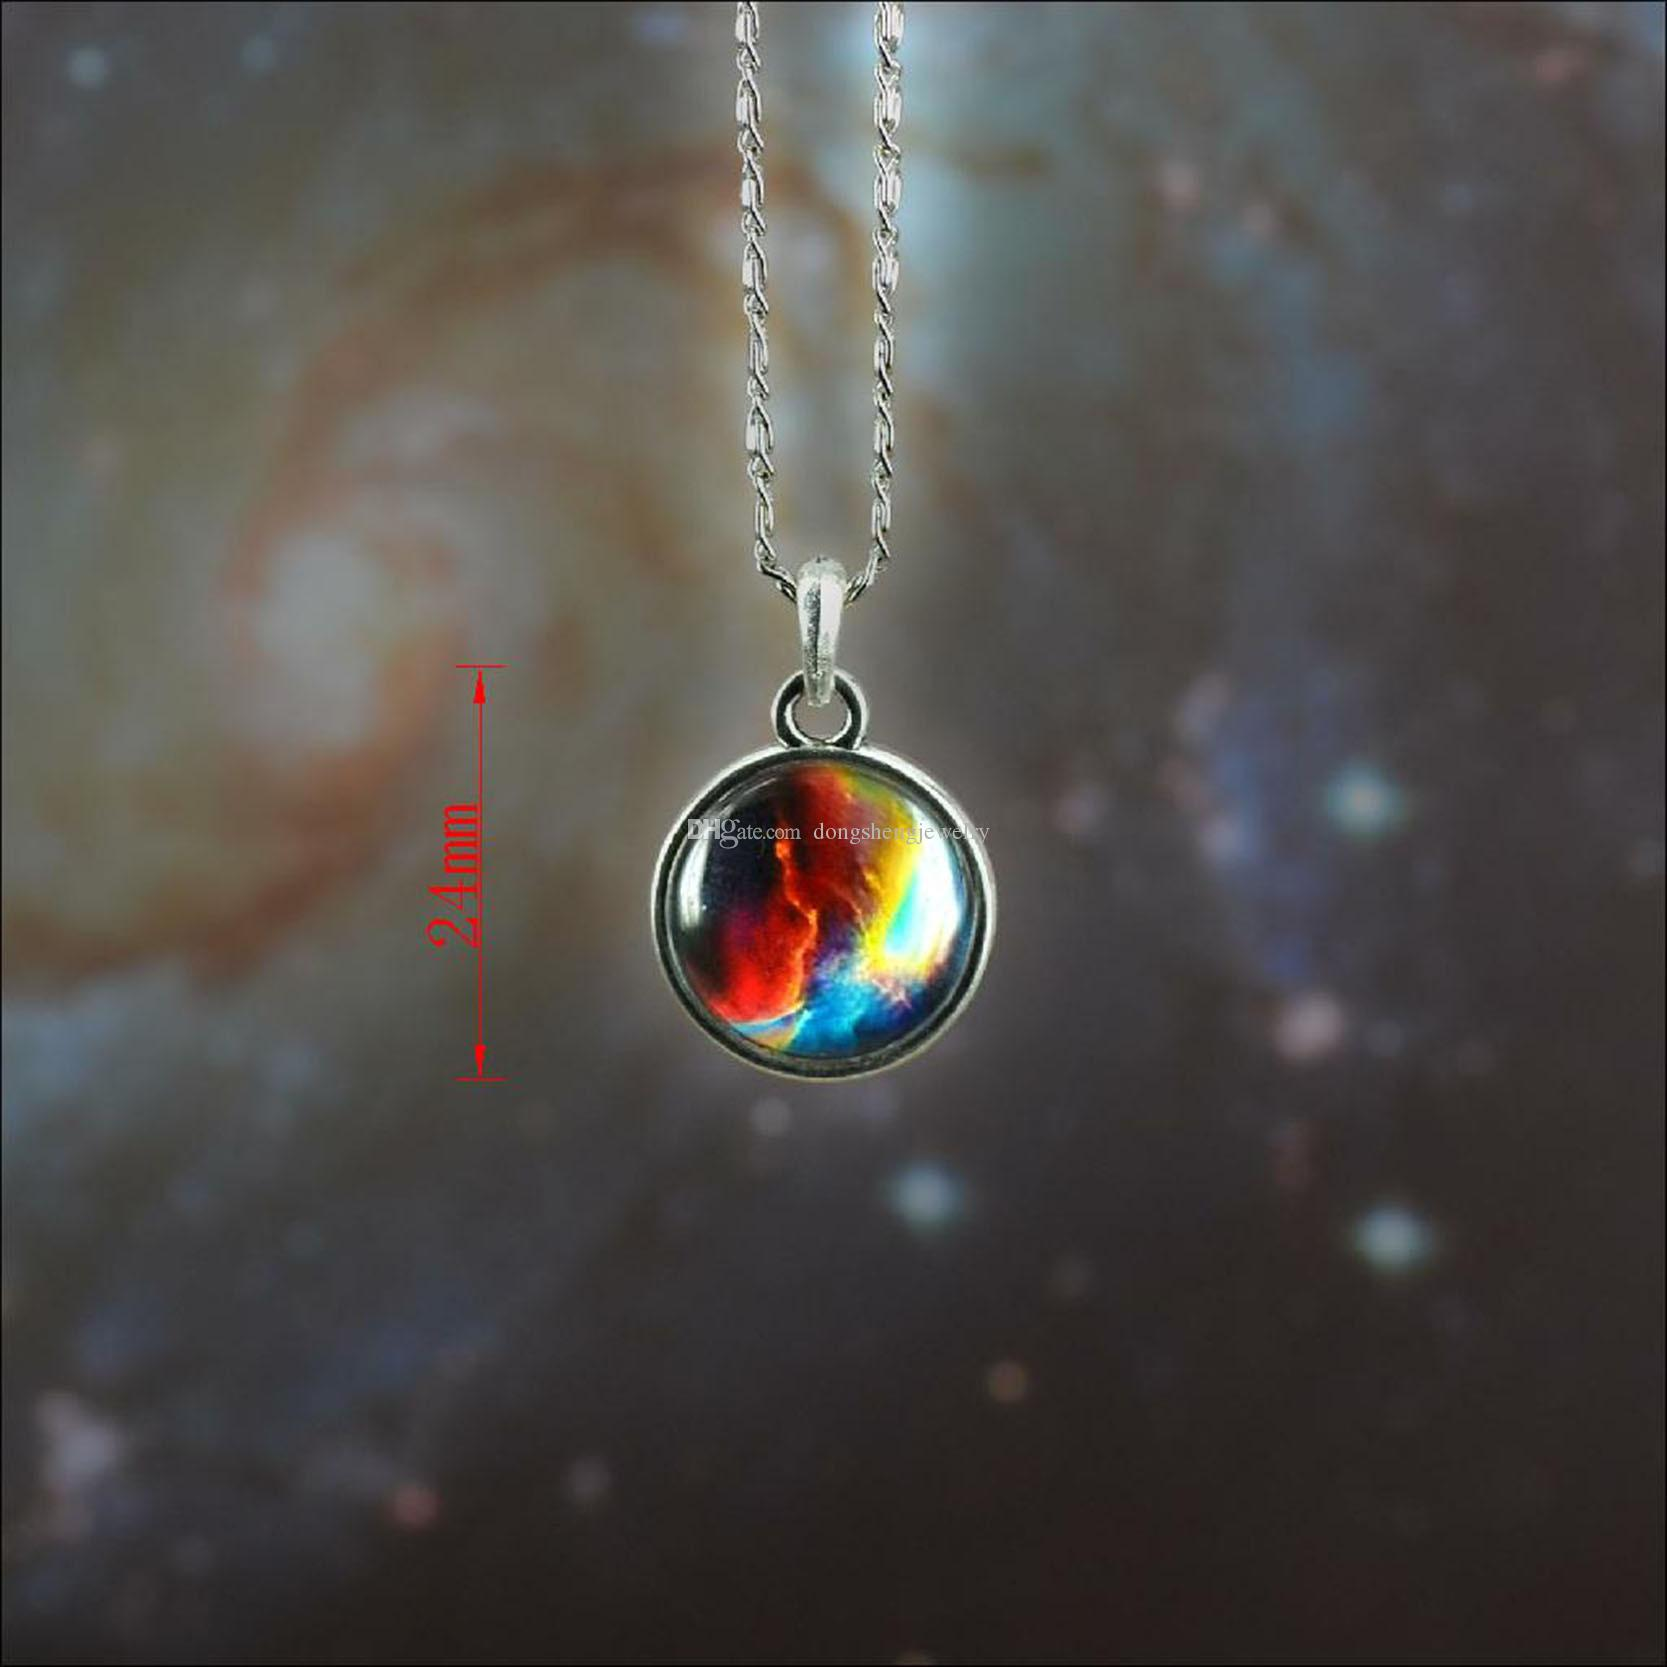 diy nebula jewelry - photo #1